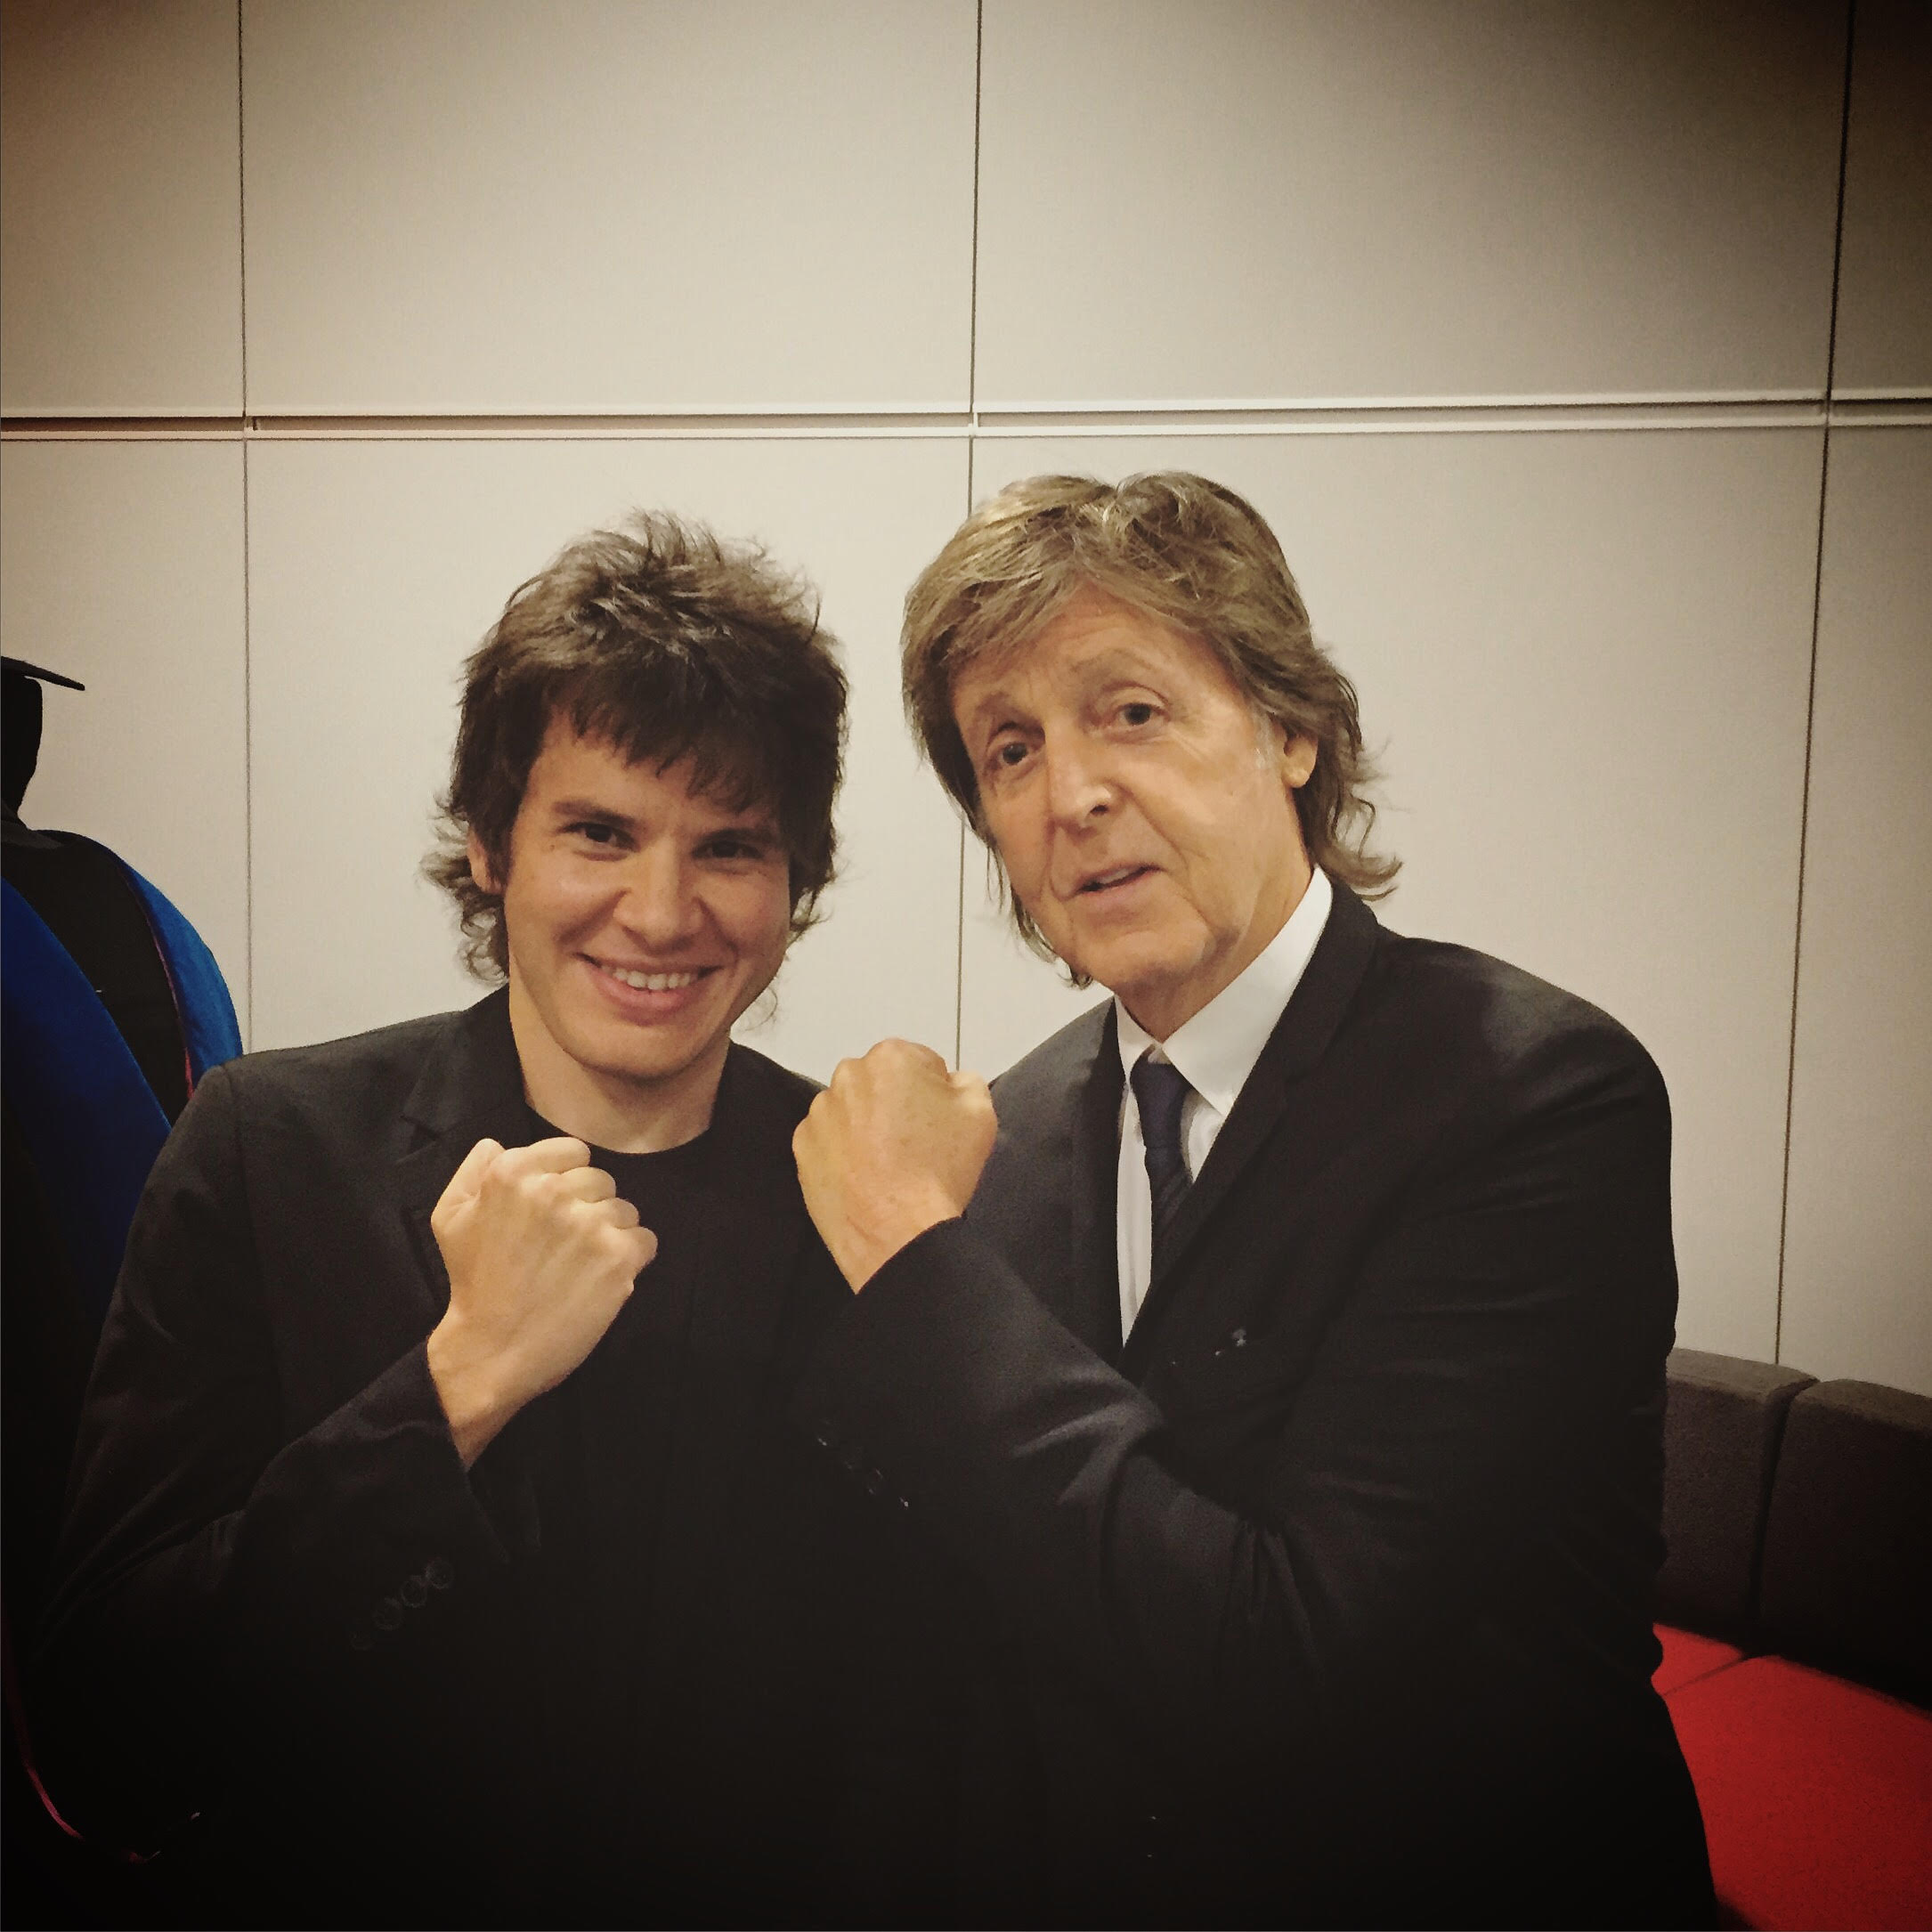 Sir Paul McCartney and MAYOR TOM in LIPA (Liverpool)